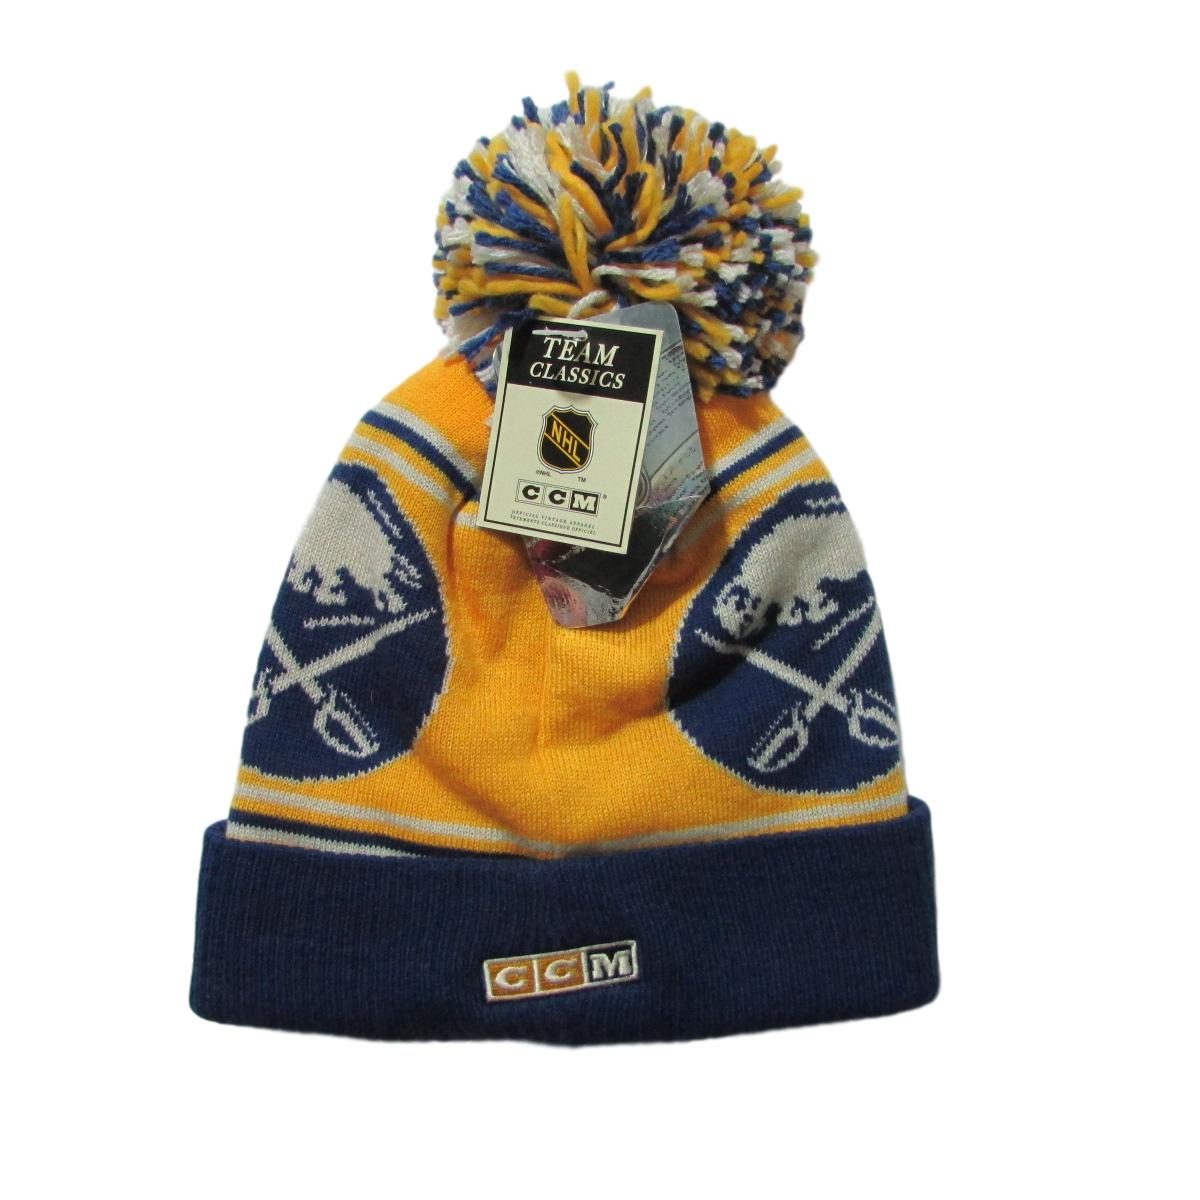 Buffalo Sabers Team Classics Hockey Pom Beanie